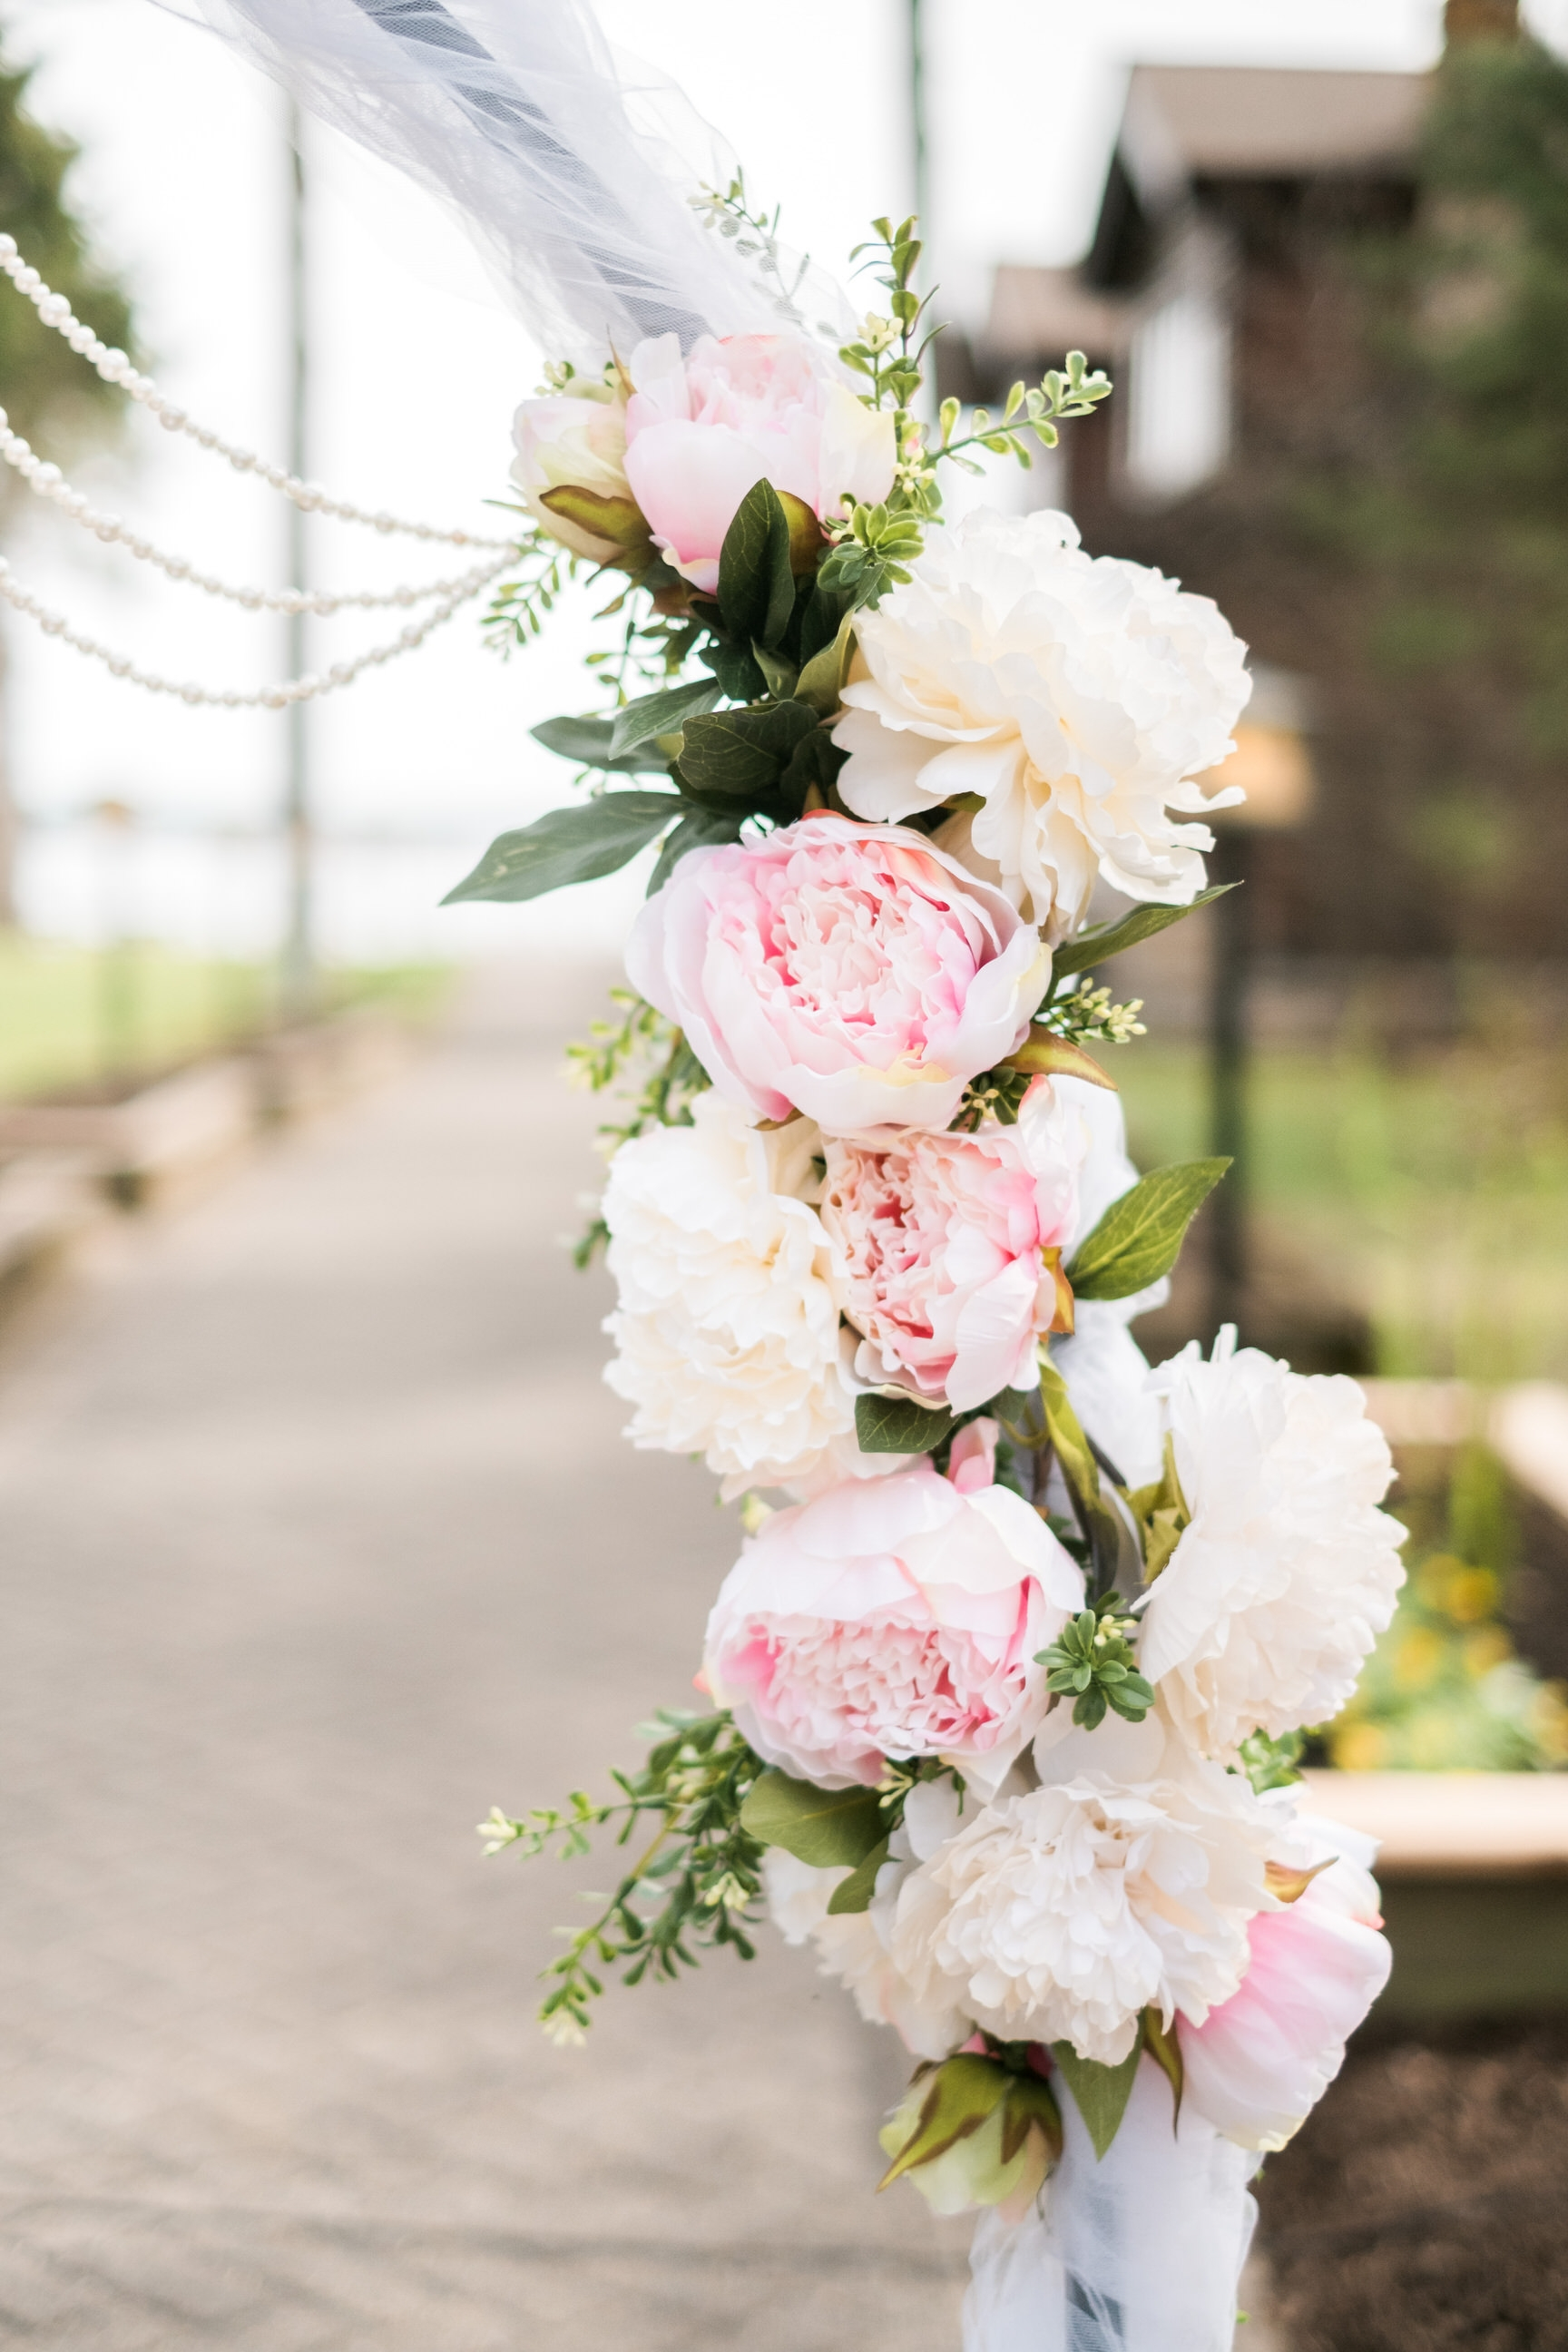 Lakeside wedding ceremony at Grand View Lodge in Nisswa, MN